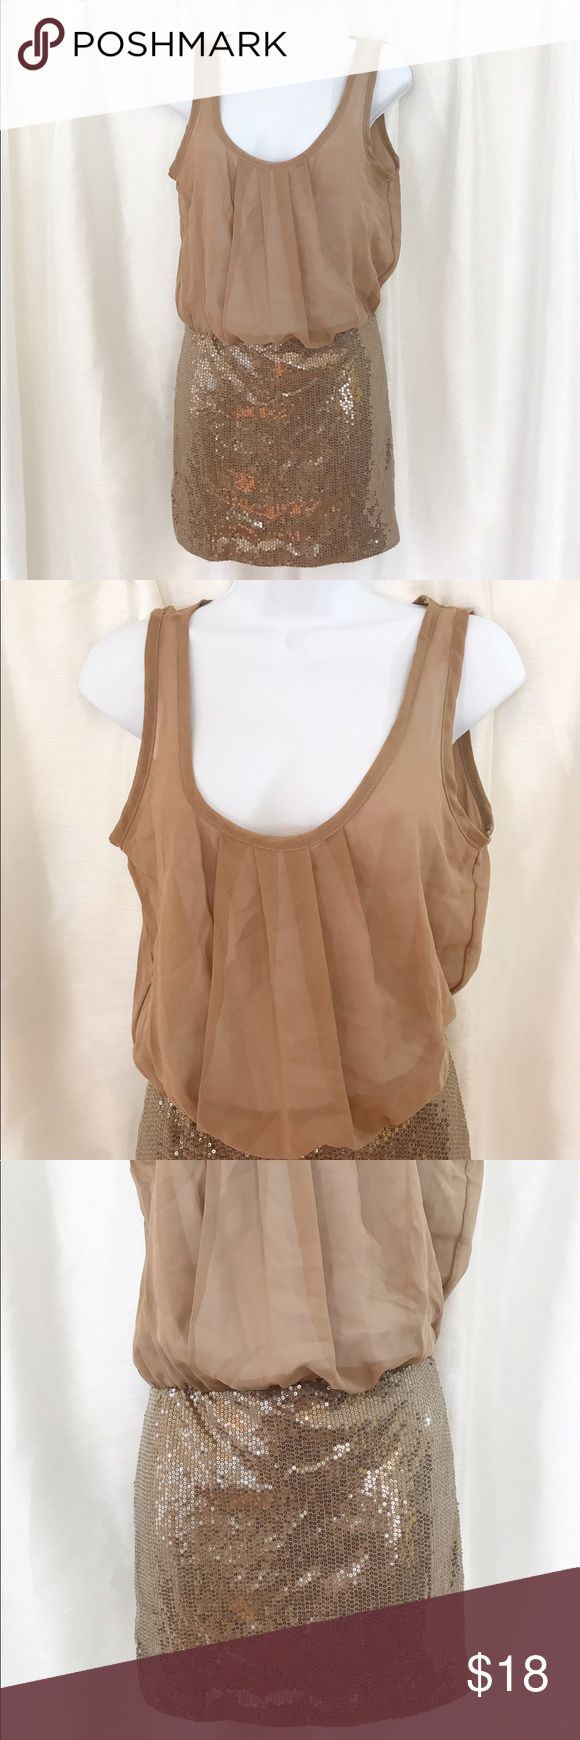 """Sheer Sequin Mini Dress sz M Sheer Top and sequin skirt. Slit opening in the back. Toffee/light brown color. Elastic waist. Length is 31"""" size M Dresses Mini"""